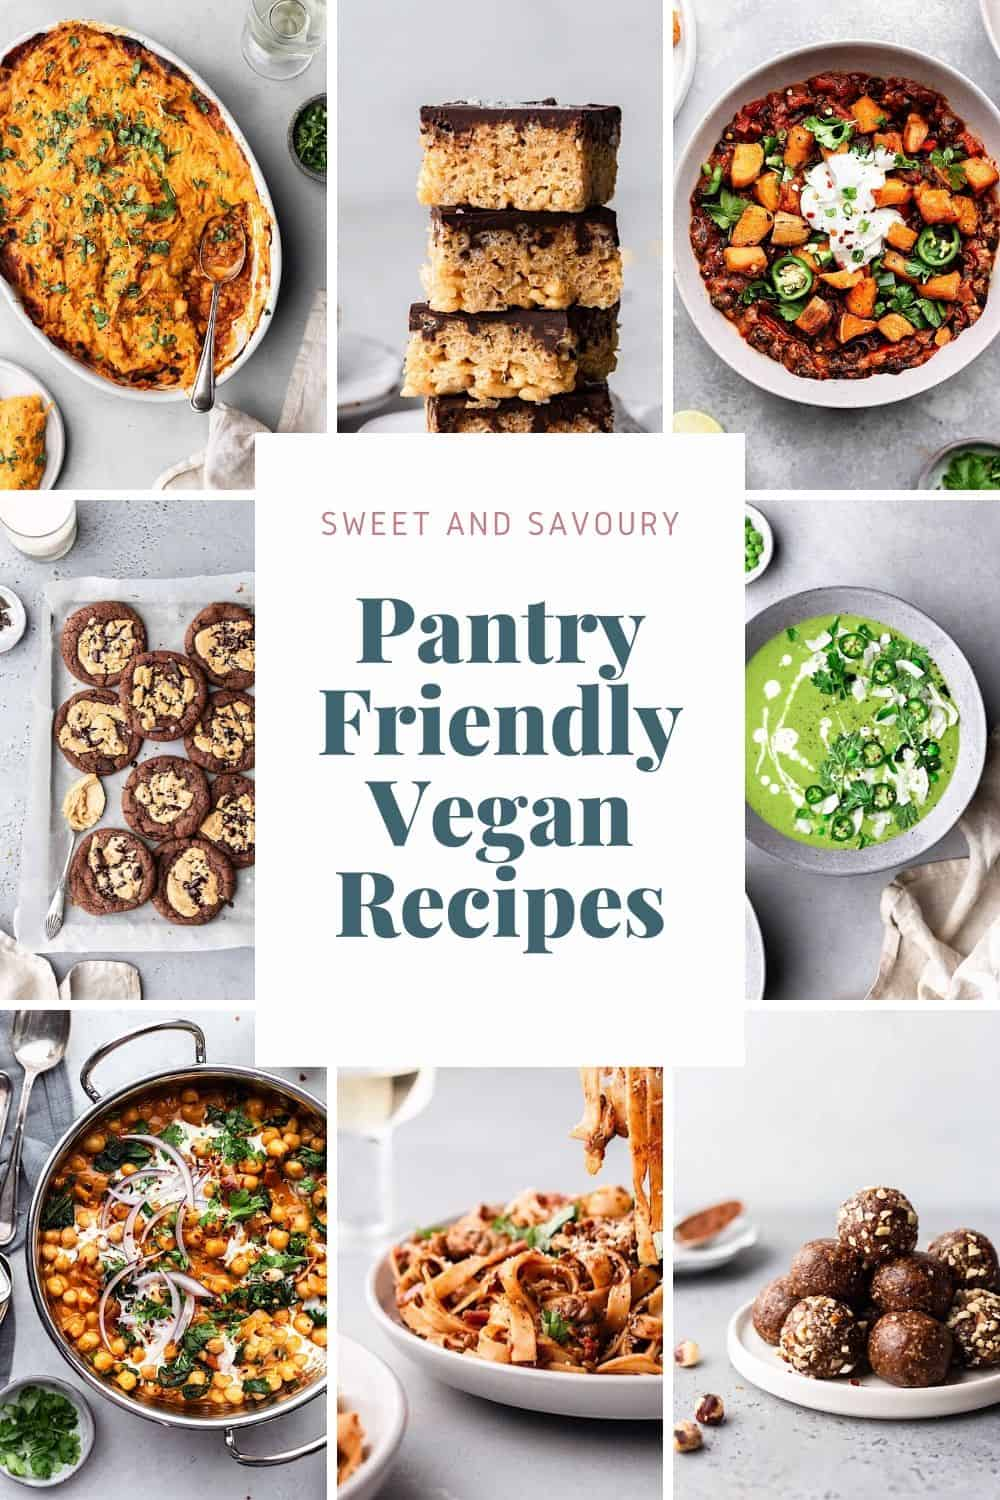 Pantry Friendly Vegan Recipes #pantry #vegan #savoury #recipes #easy #plantbased #dairyfree